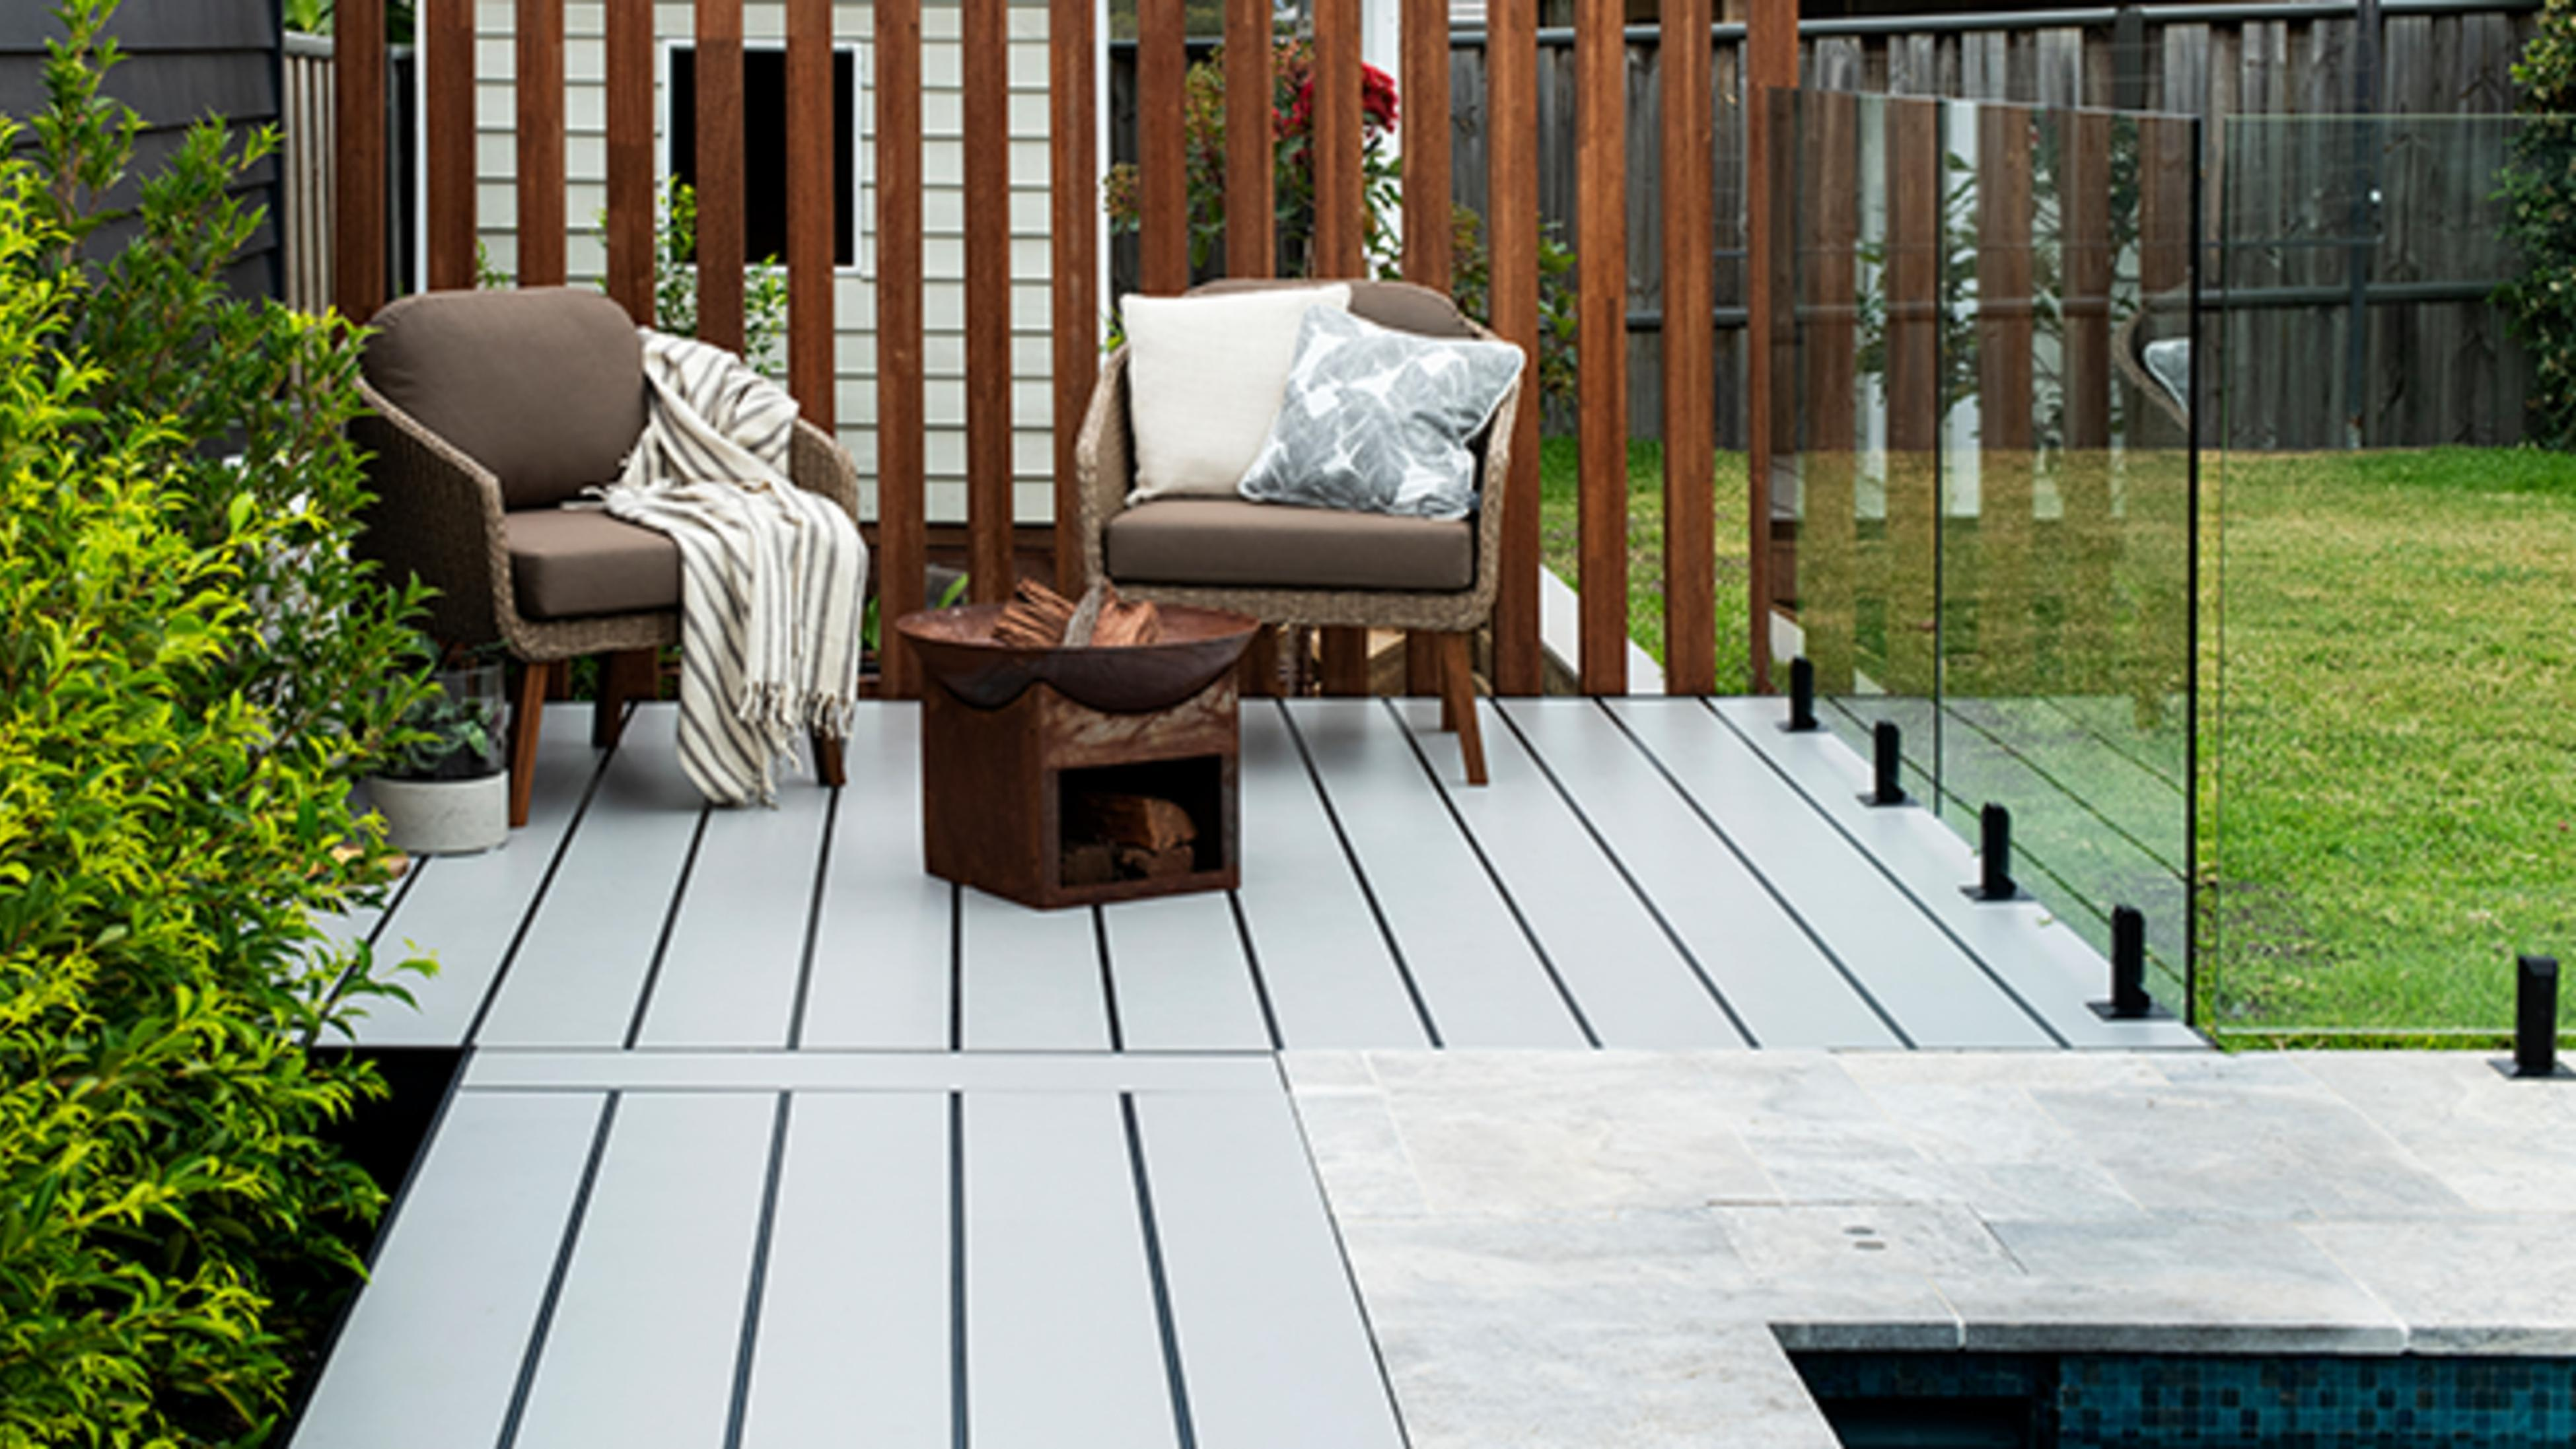 Outdoor deck area with furniture and plants